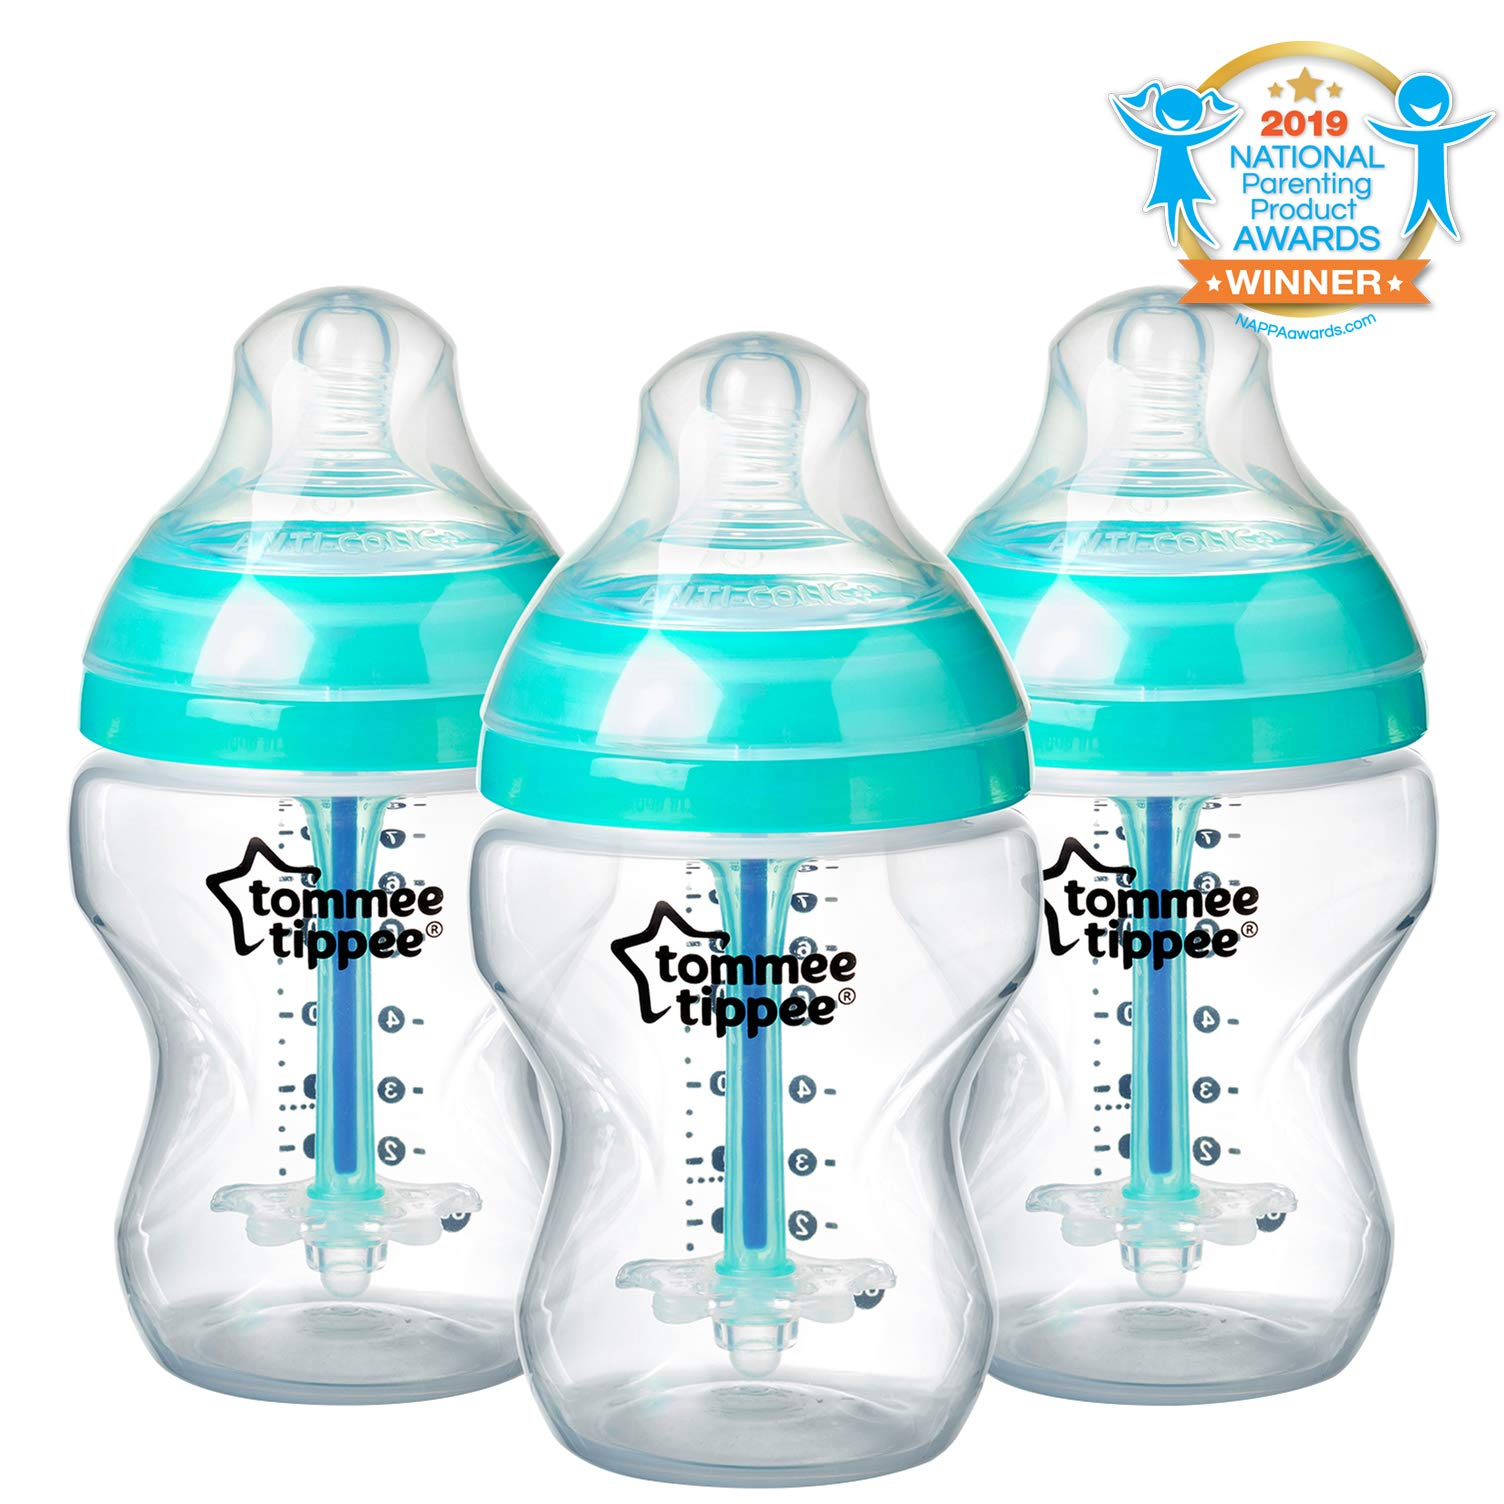 Tommee Tippee Advanced Anti-Colic Baby Bottle Feeding Set, Heat Sensing Technology, Breast-like Nipple, BPA-Free - 9 ounce, 3 Count by Tommee Tippee